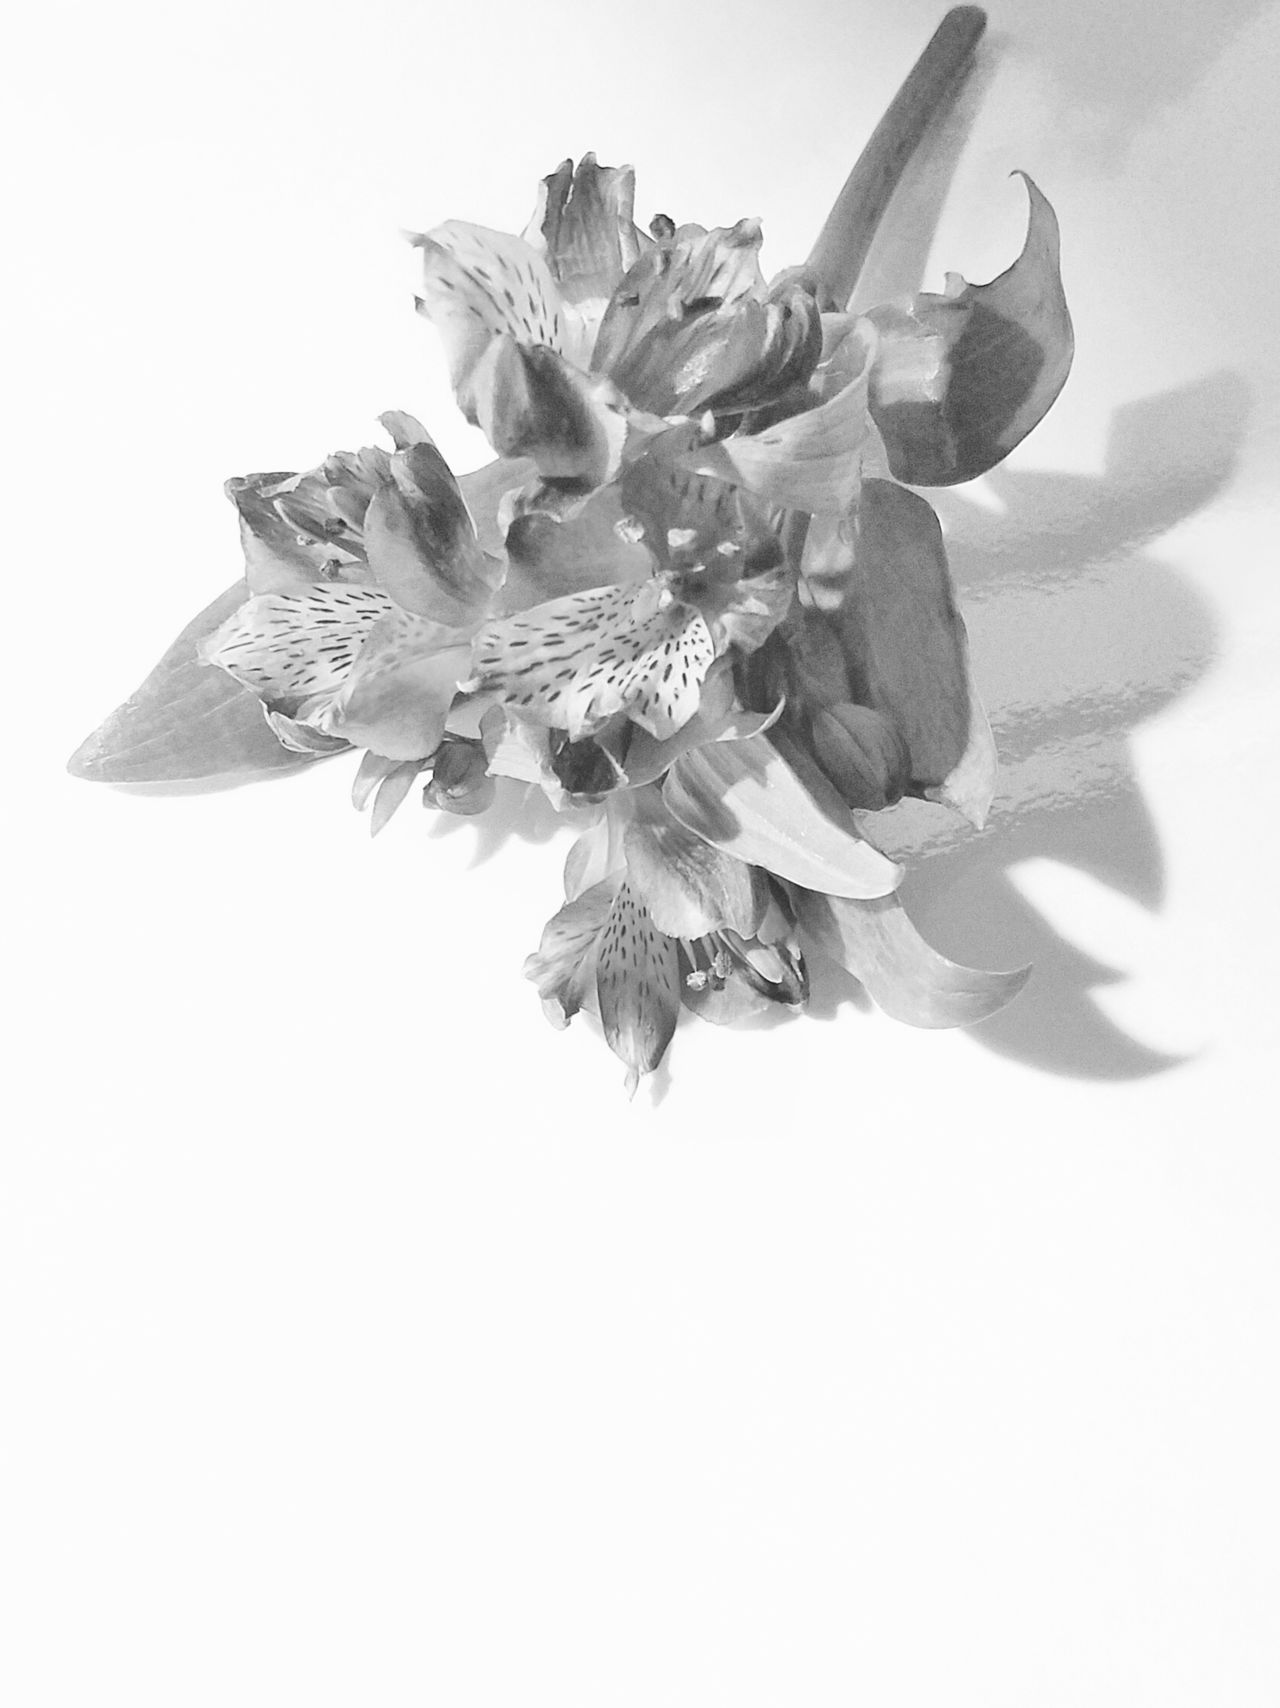 B&W Flower Stem Beauty In Nature Close-up Day Delicate Beauty Flower Flower Head Fragility Freshness MUR B&W Nature No People Outdoors Petal The Song Of Light White Background Wilted Plant